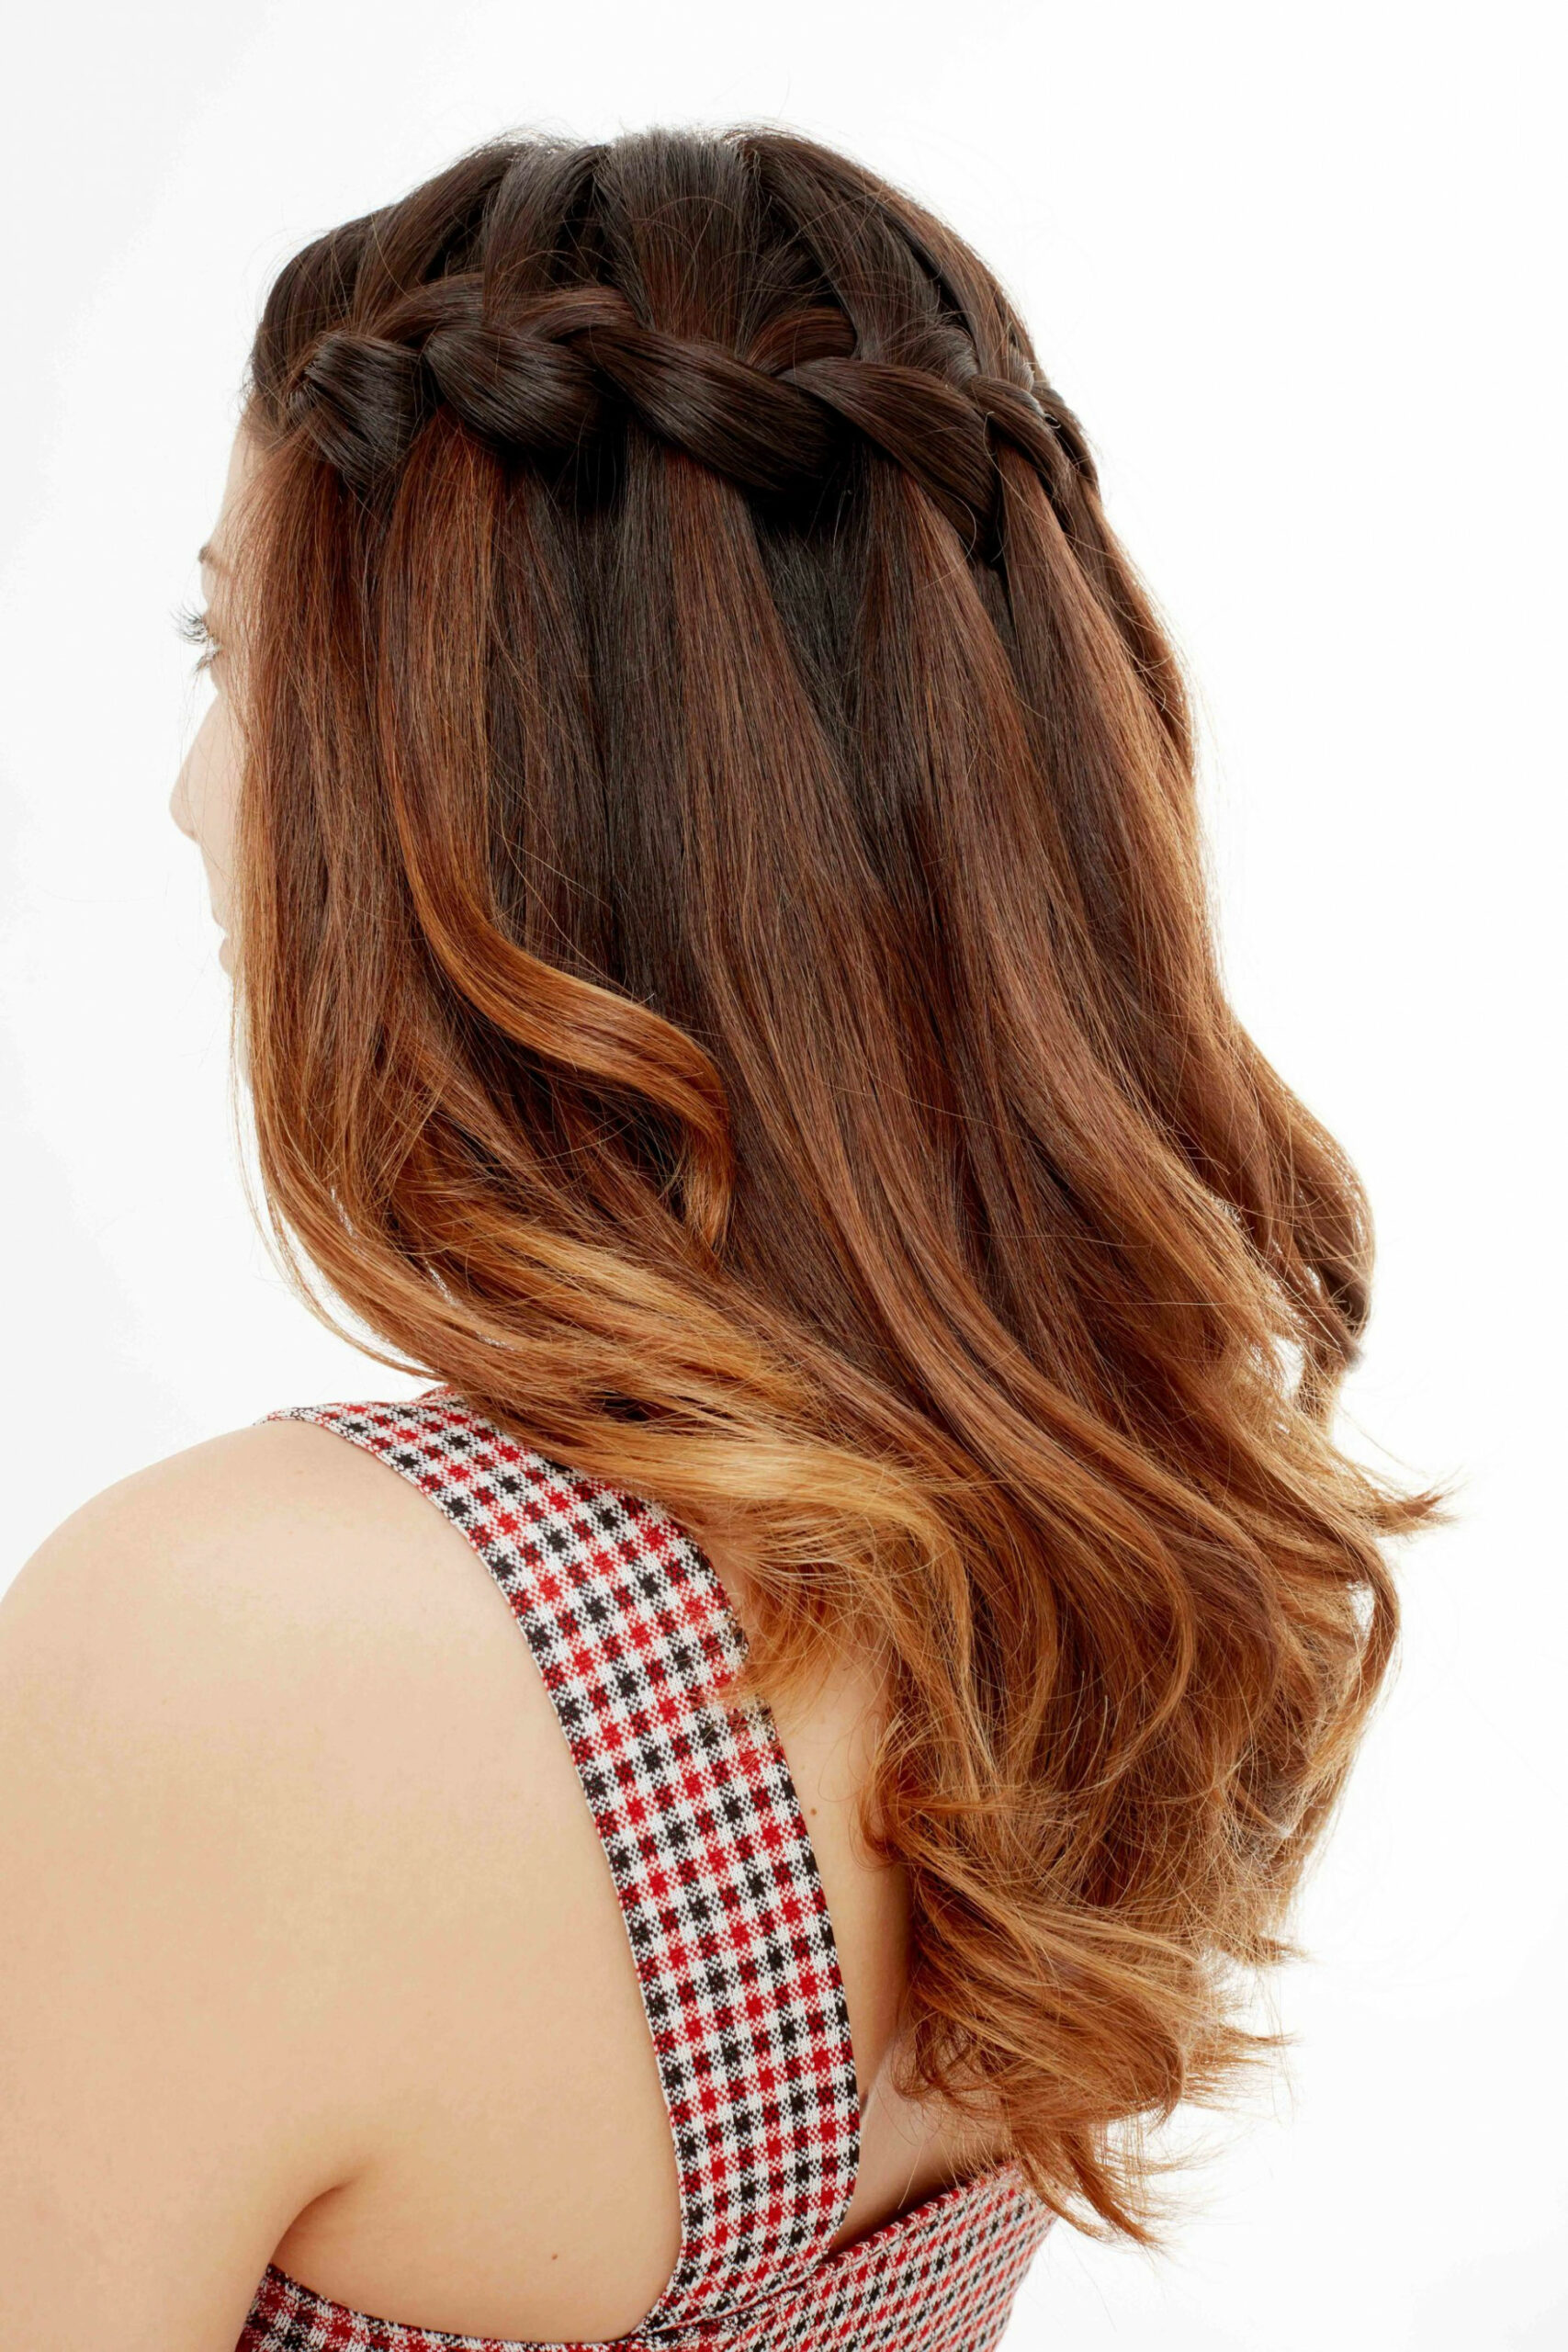 10 Wedding Guest Hairstyles That'll Make You The Chicest Attendee